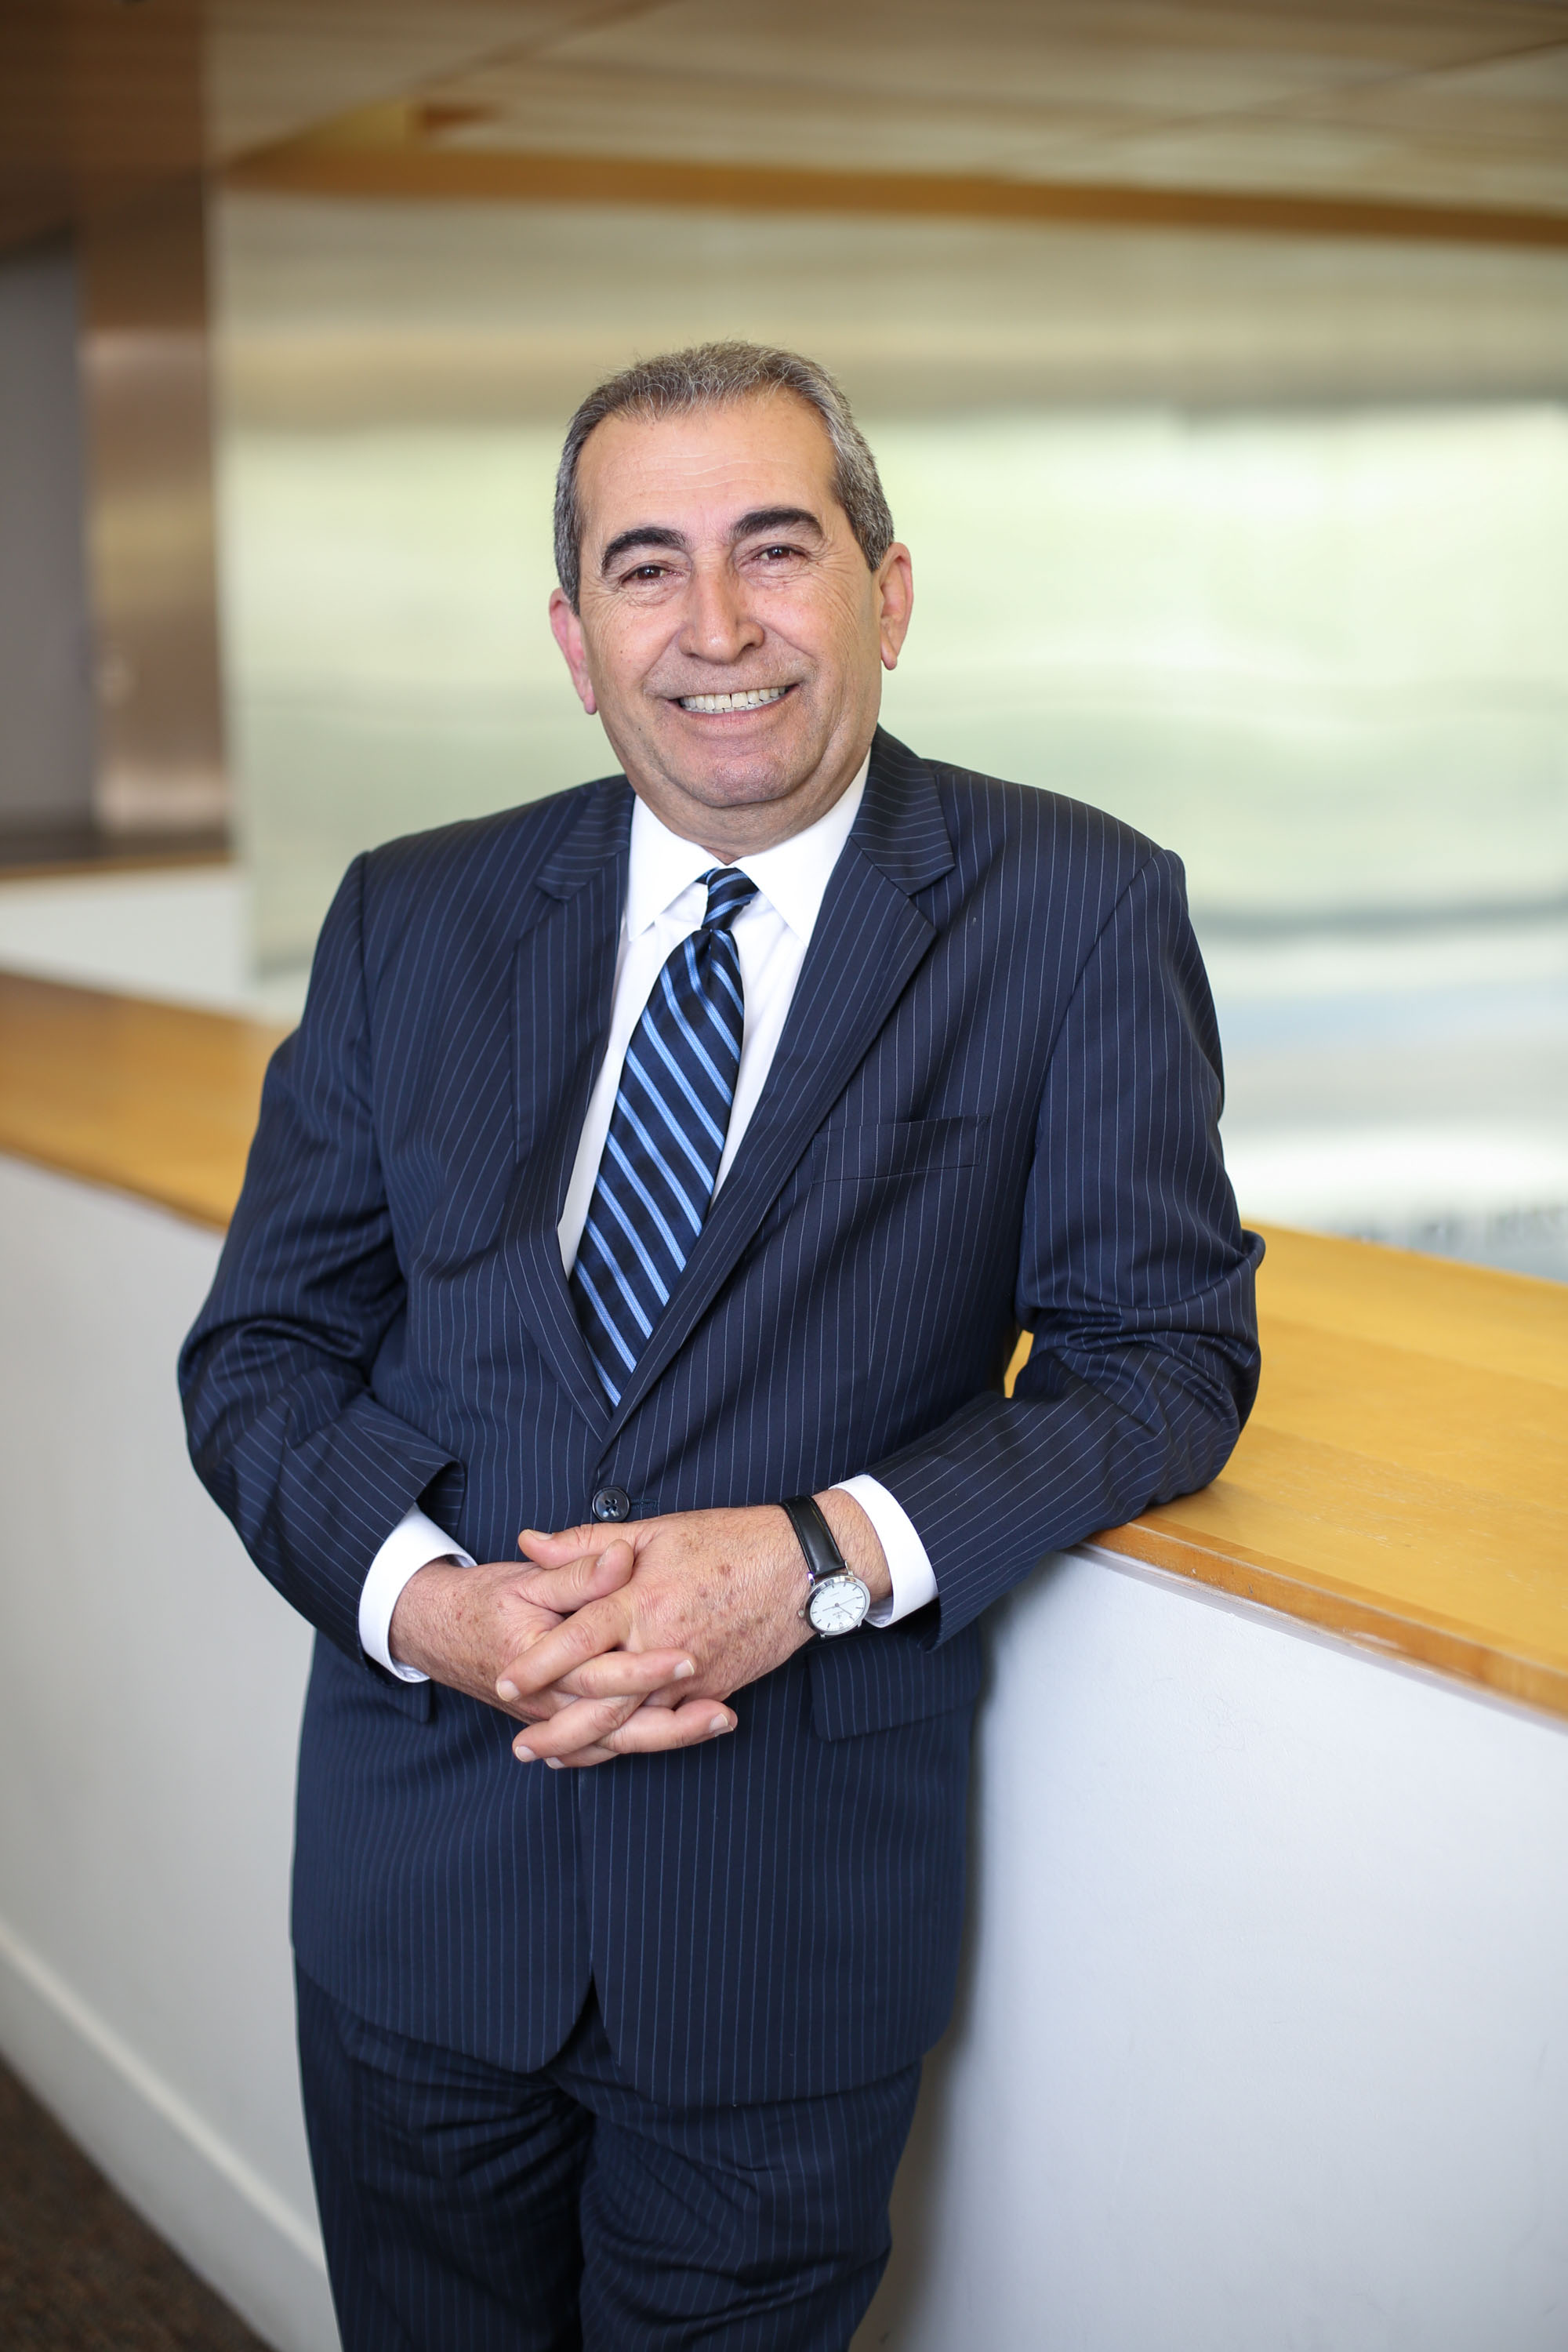 World-renowned Economist Dr. Esmael Adibi